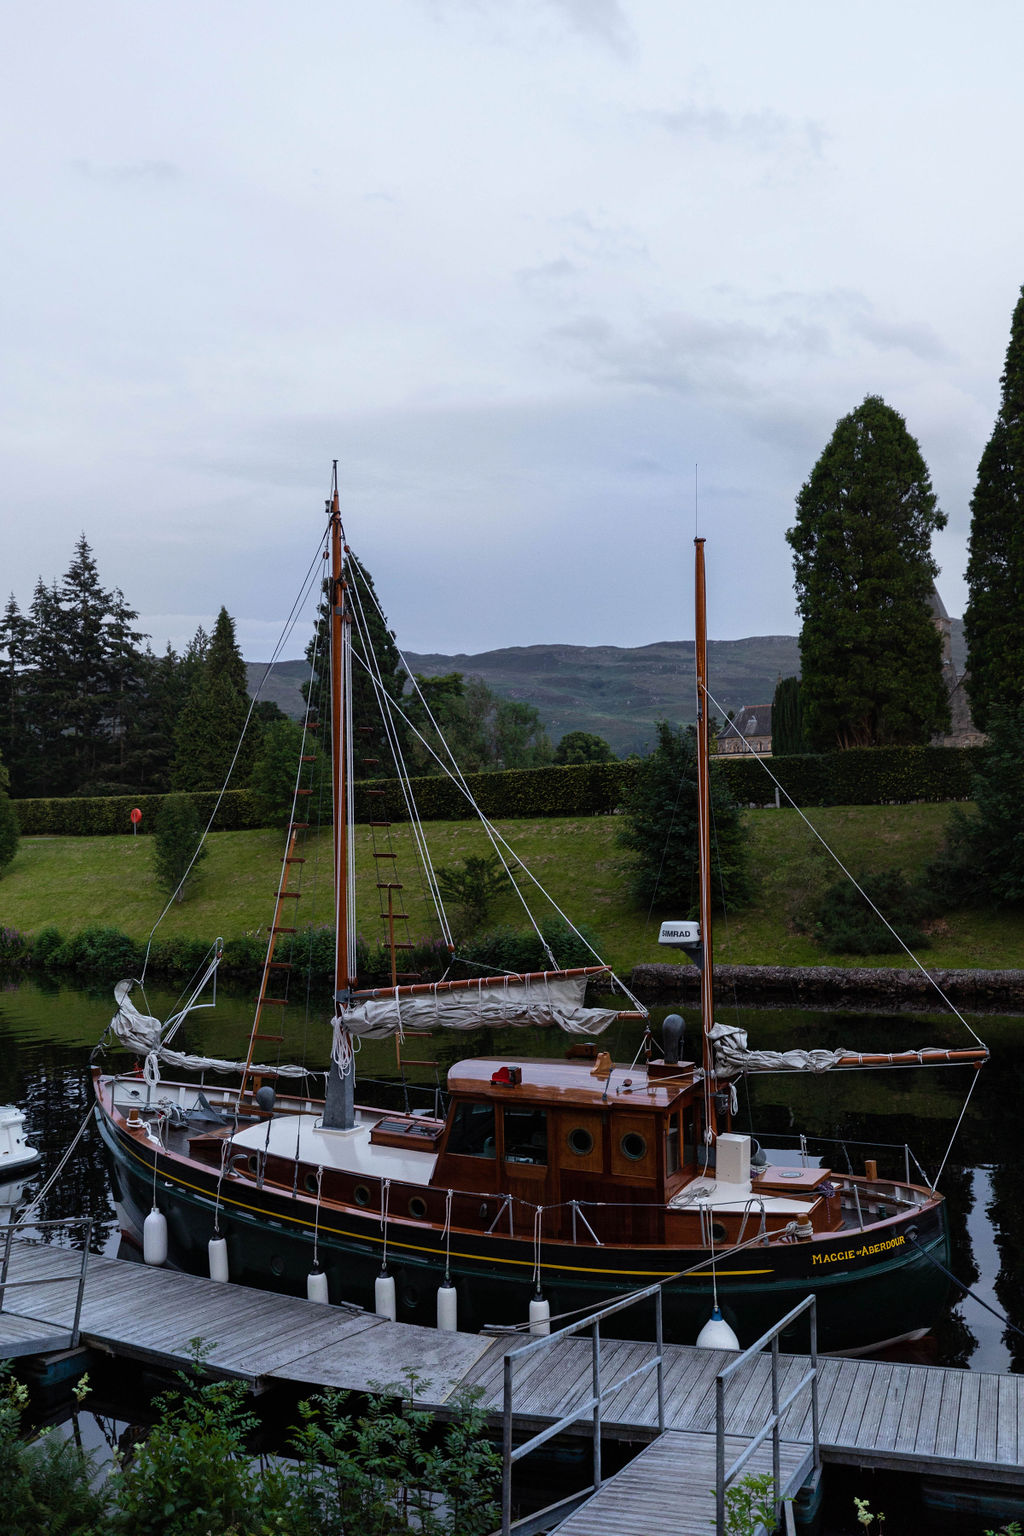 Charter a Sailboat in Loch Ness City Travel Guide Tourism Information by Annie Fairfax